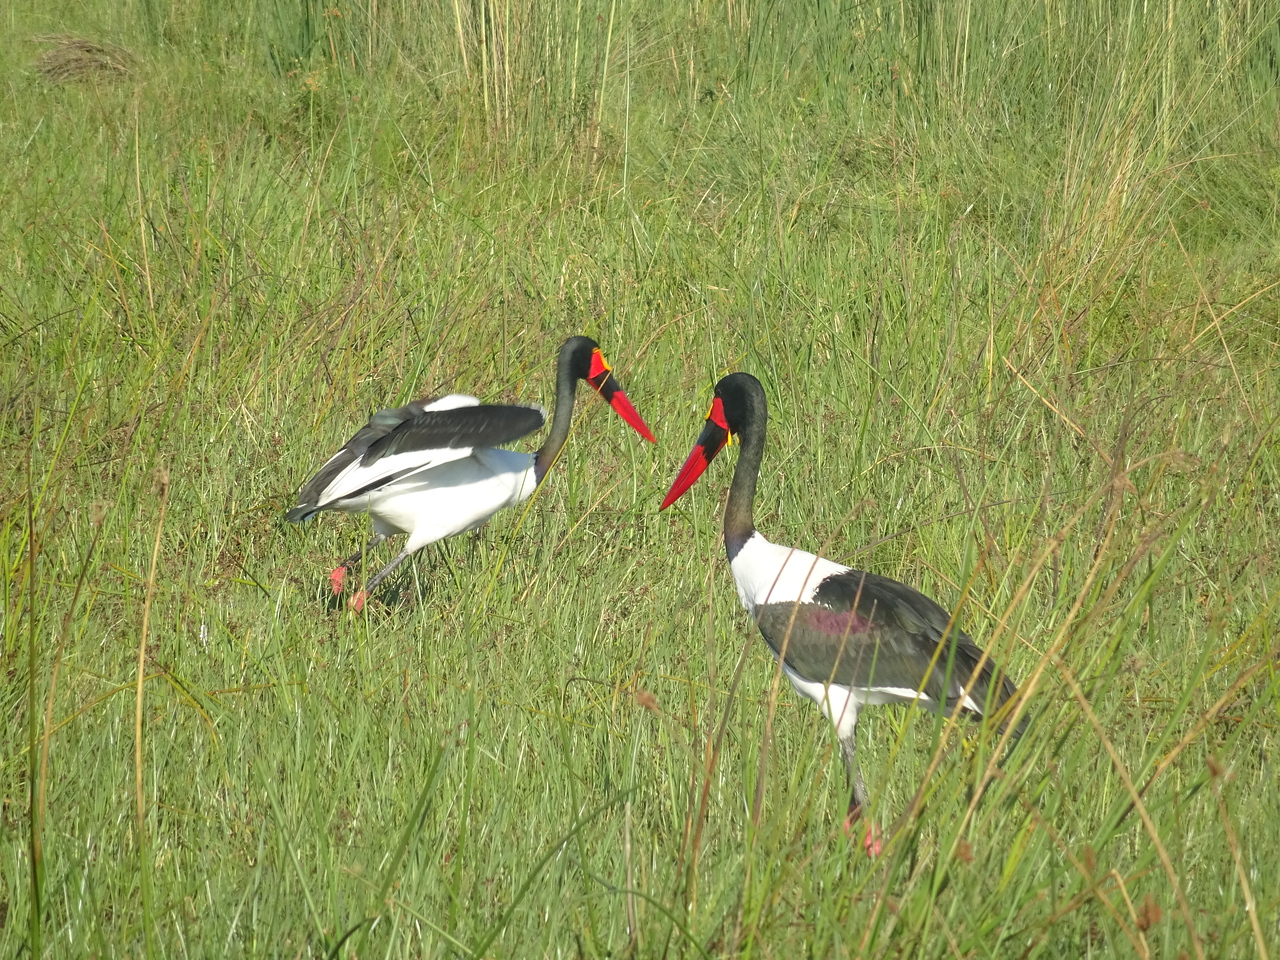 055_Okavango Delta, Moremi Game Reserve  4WD Safari  Saddlebilled Stork  Length, 1 4 m